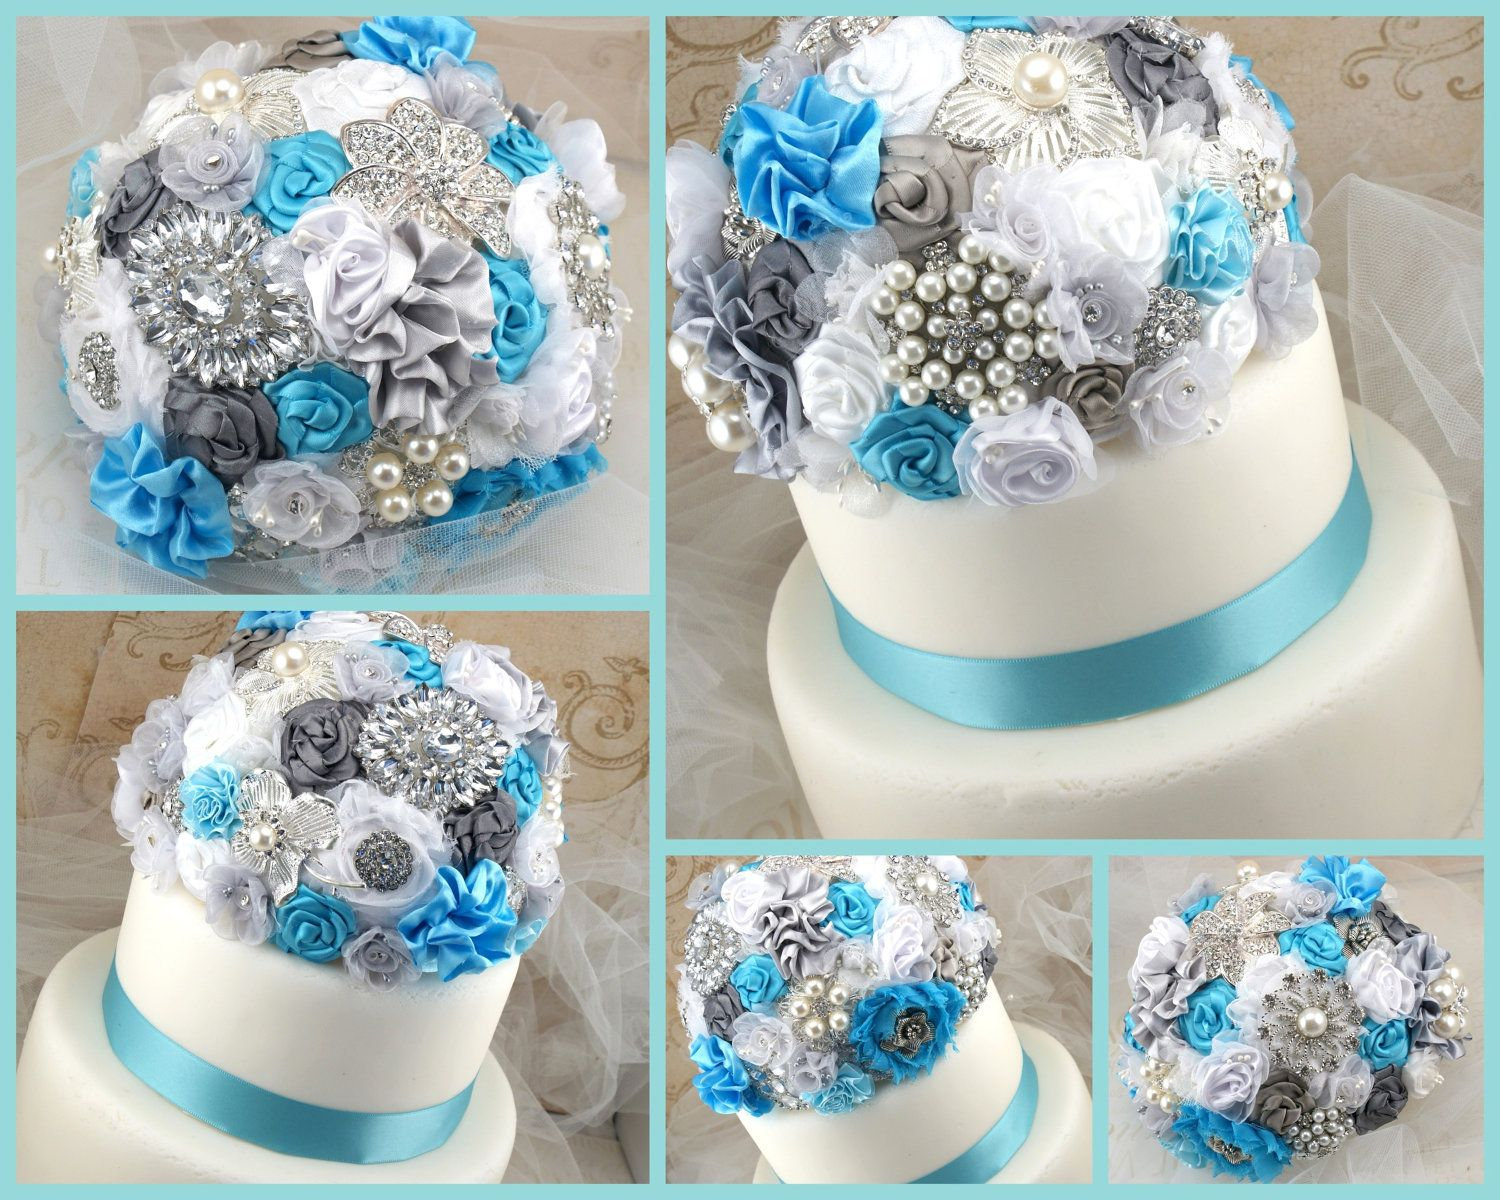 Cake Topper Brooch Turquoise White Silver Jeweled Elegant Wedding Bridal Decoration Fl Lace Pearls Crystals